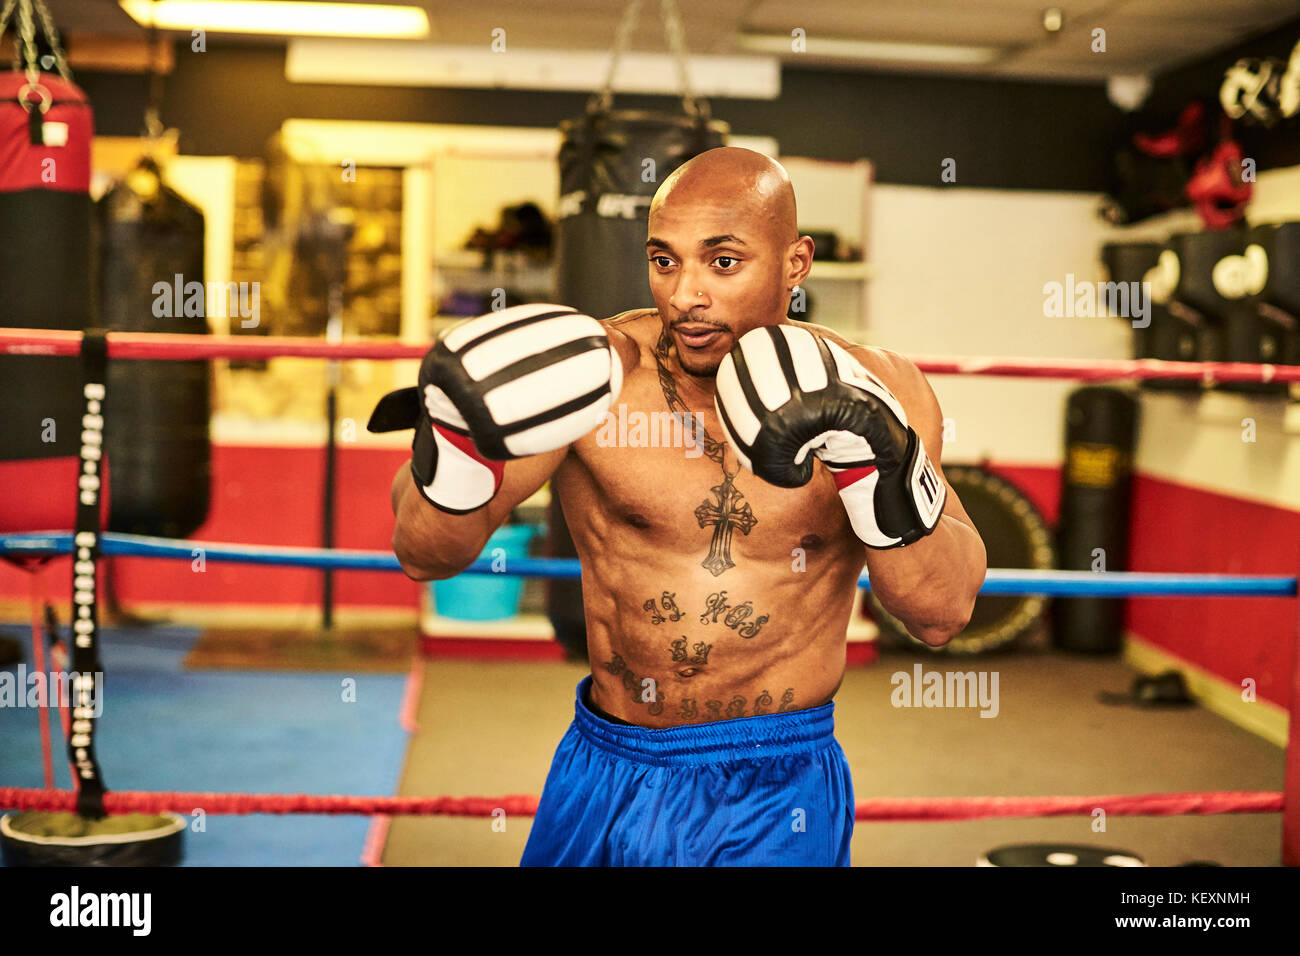 Male boxer training alone inside boxing ring, Taunton, Massachusetts, USA - Stock Image